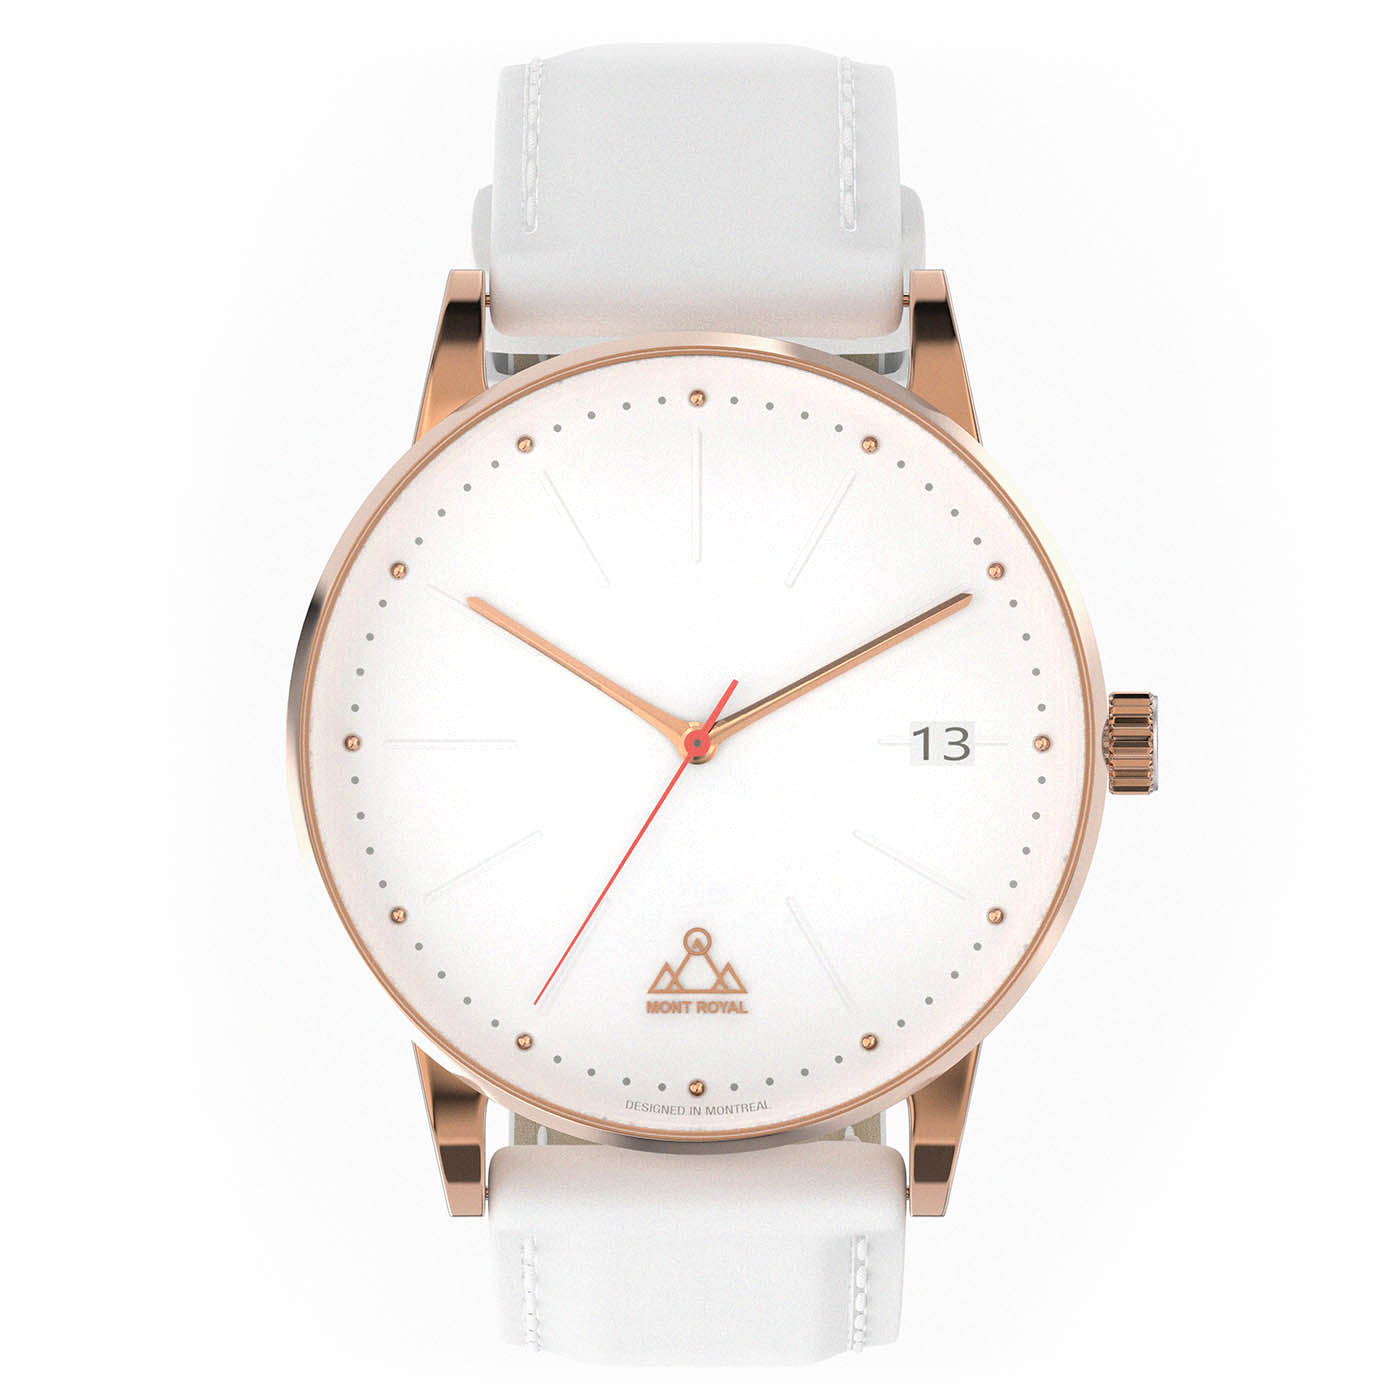 Coral + White Leather Classic Watch